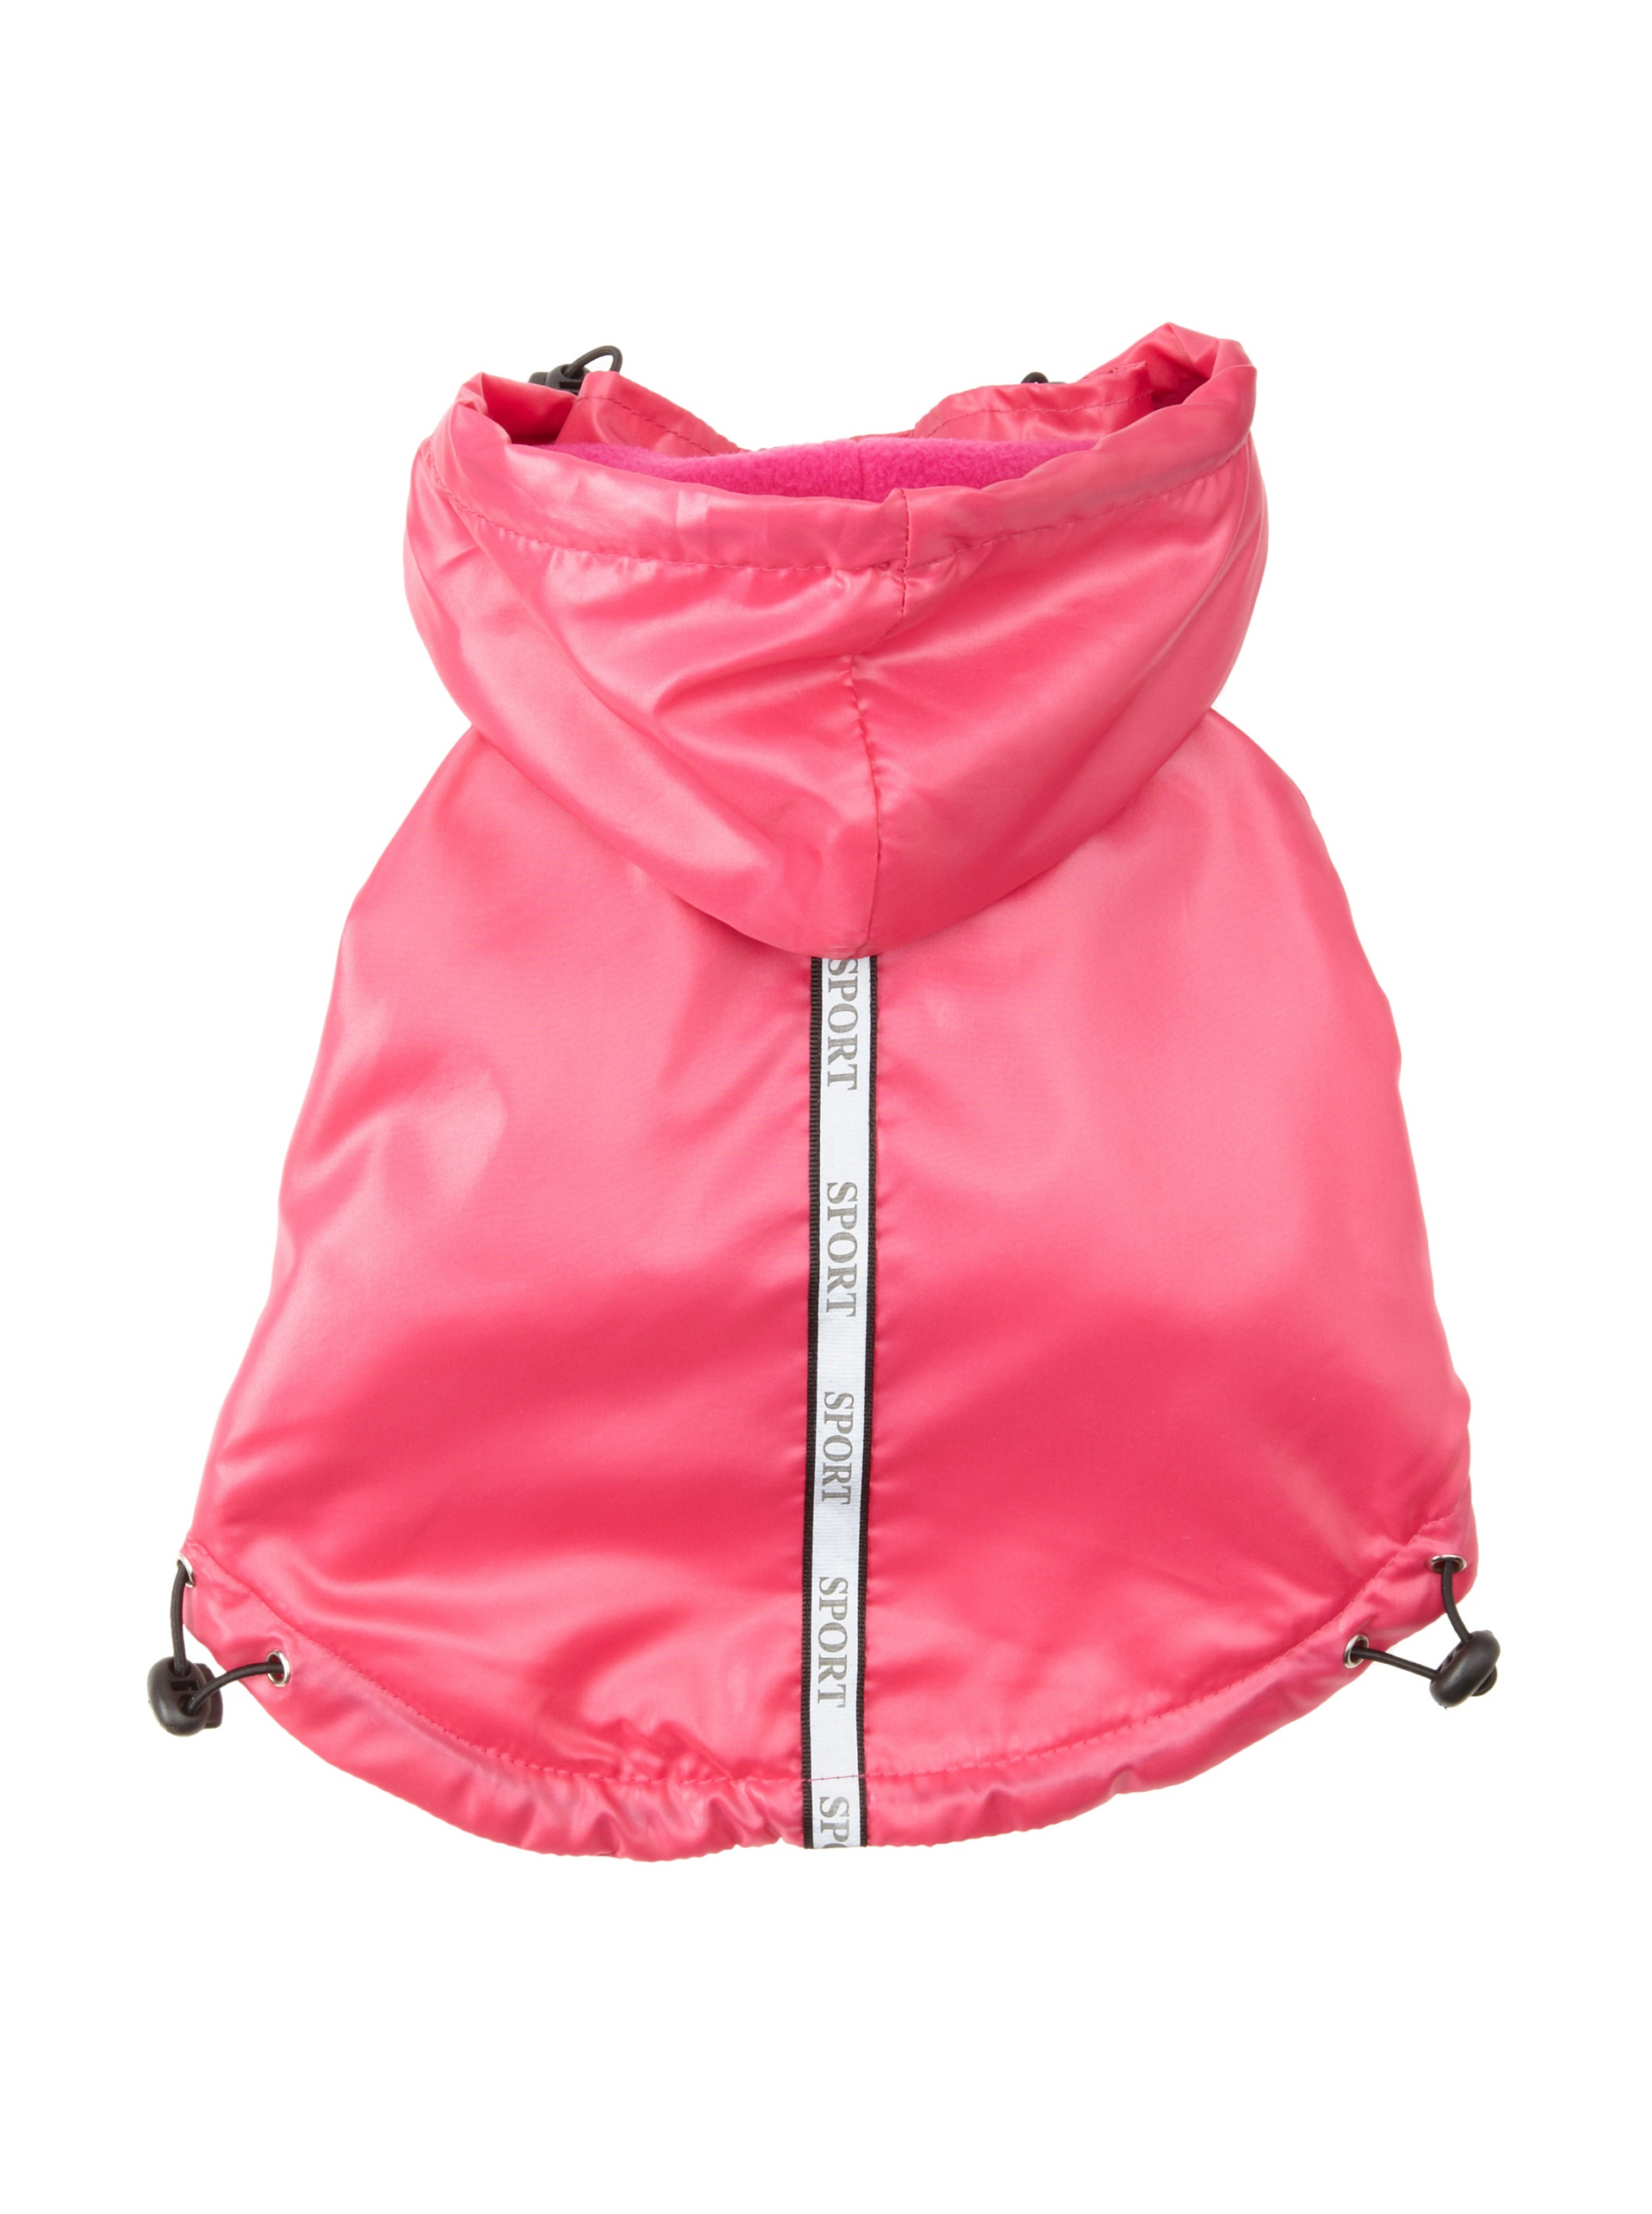 Pet Life Reflecta-Sport Rain Jacket And Windbreaker: Hot Pink, Small